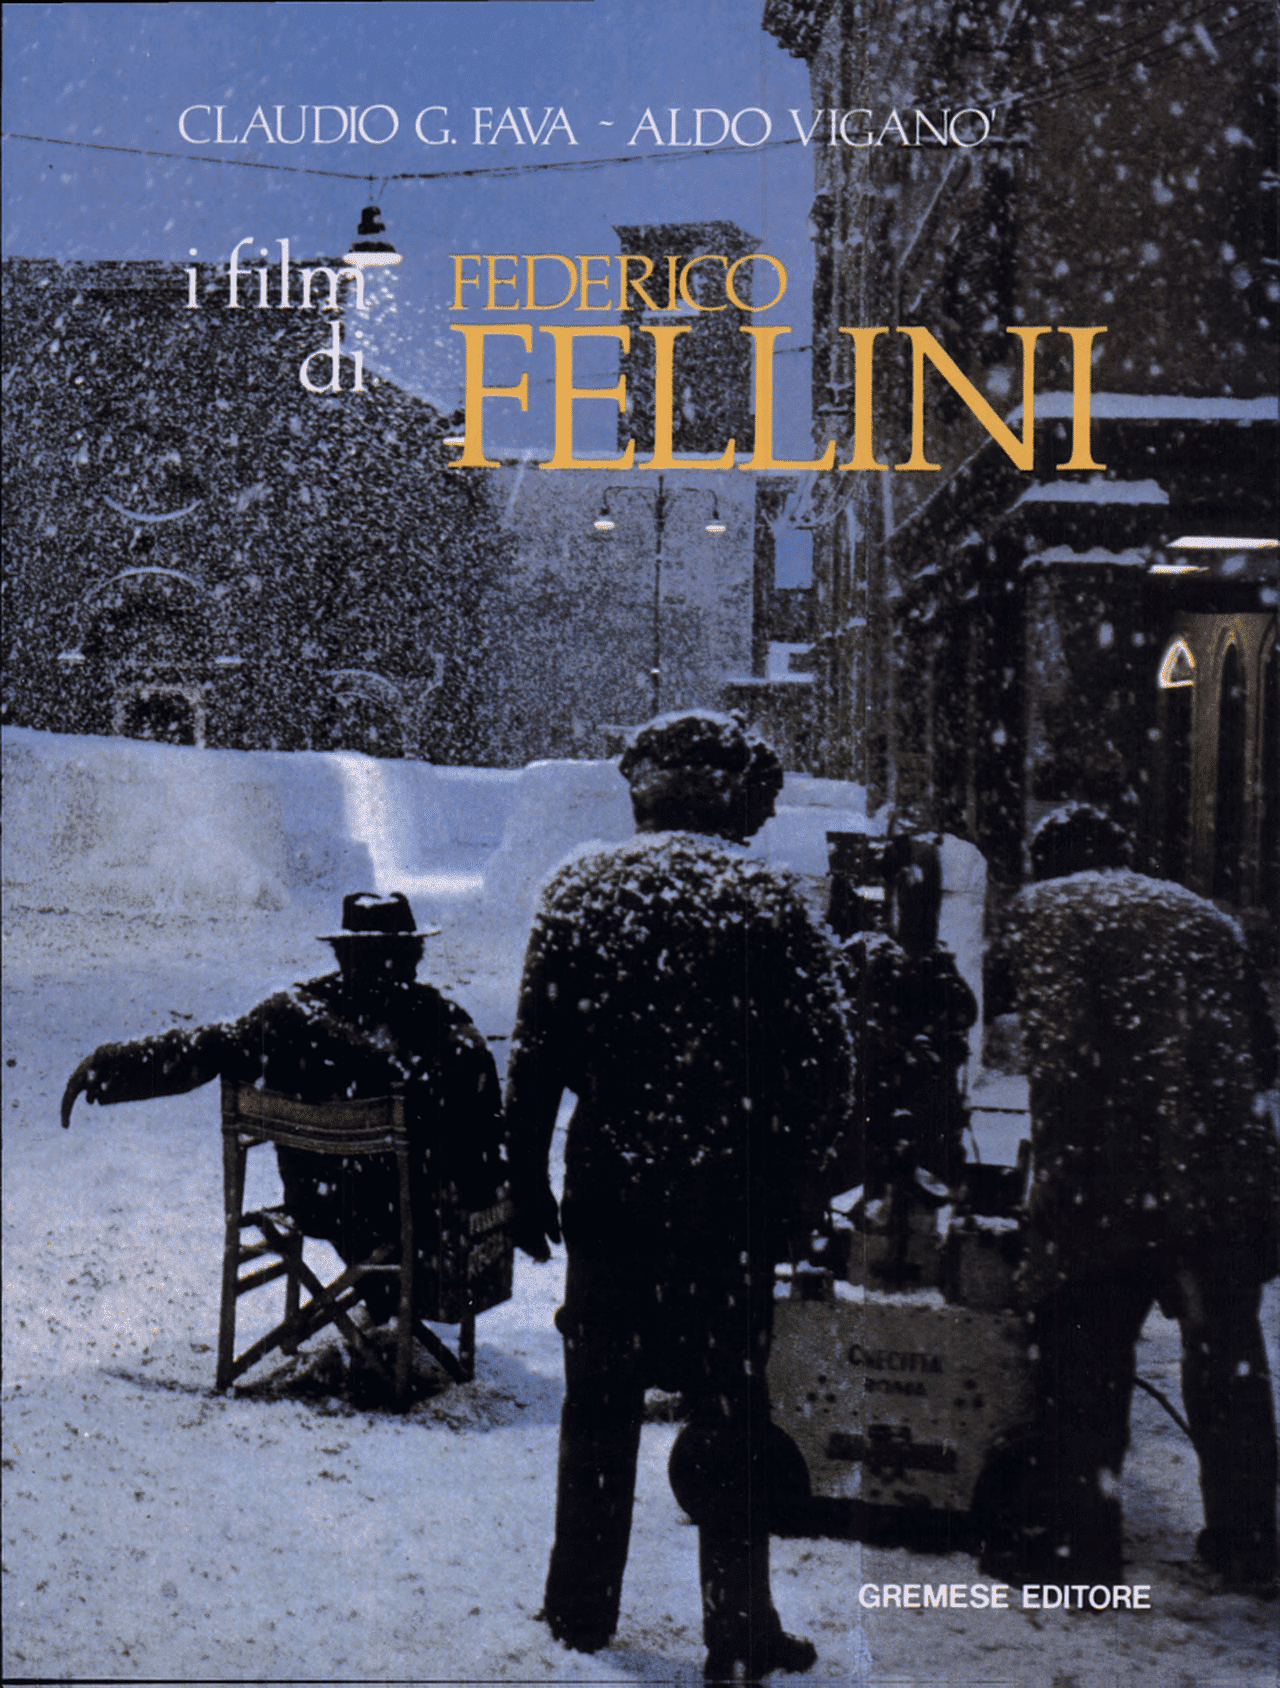 The Films of Federico Fellini 1 - The Films of Federico Fellini